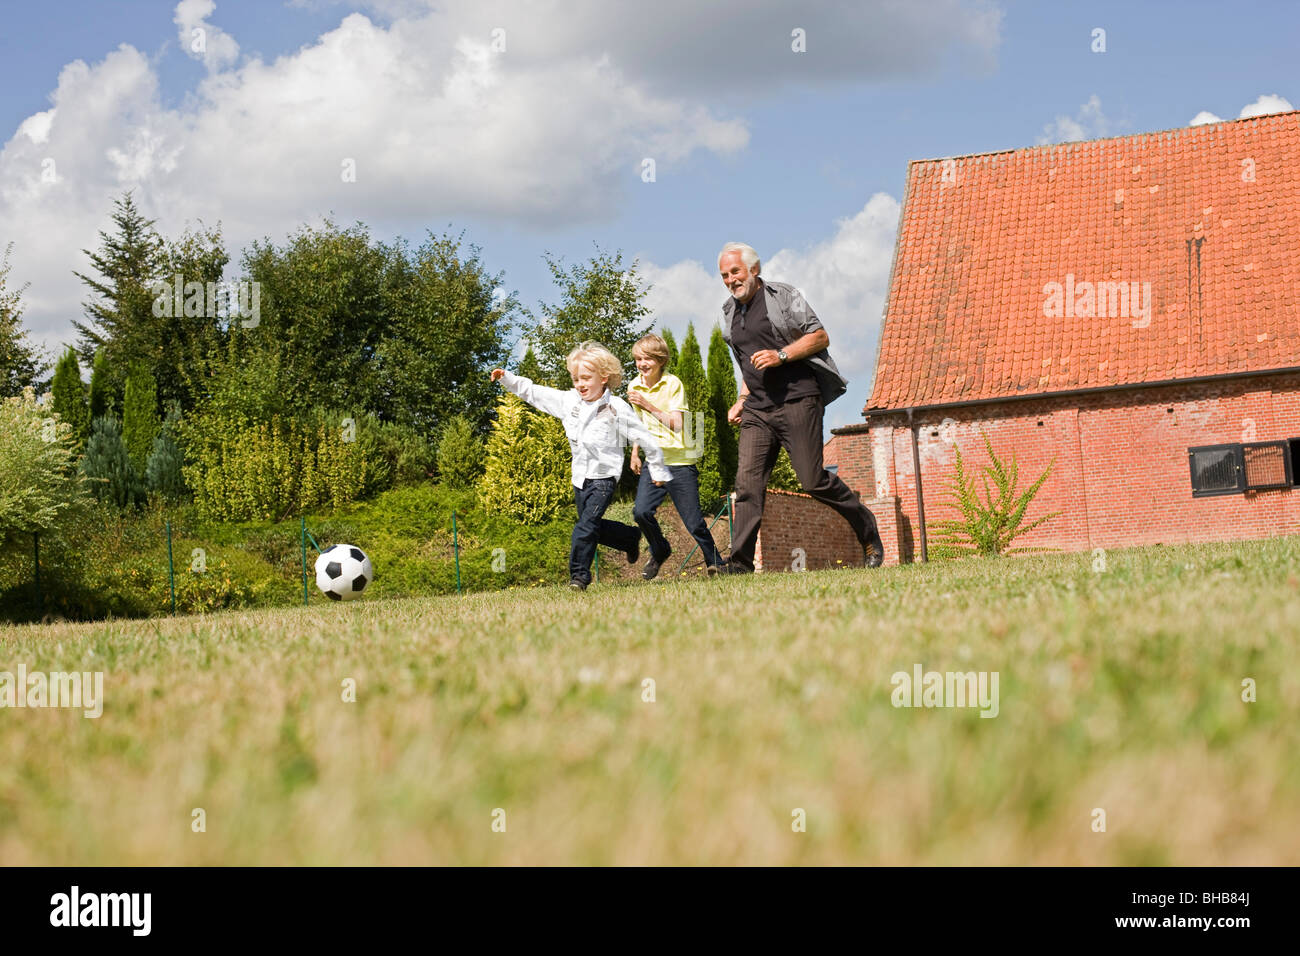 grandfather and kids playing football - Stock Image